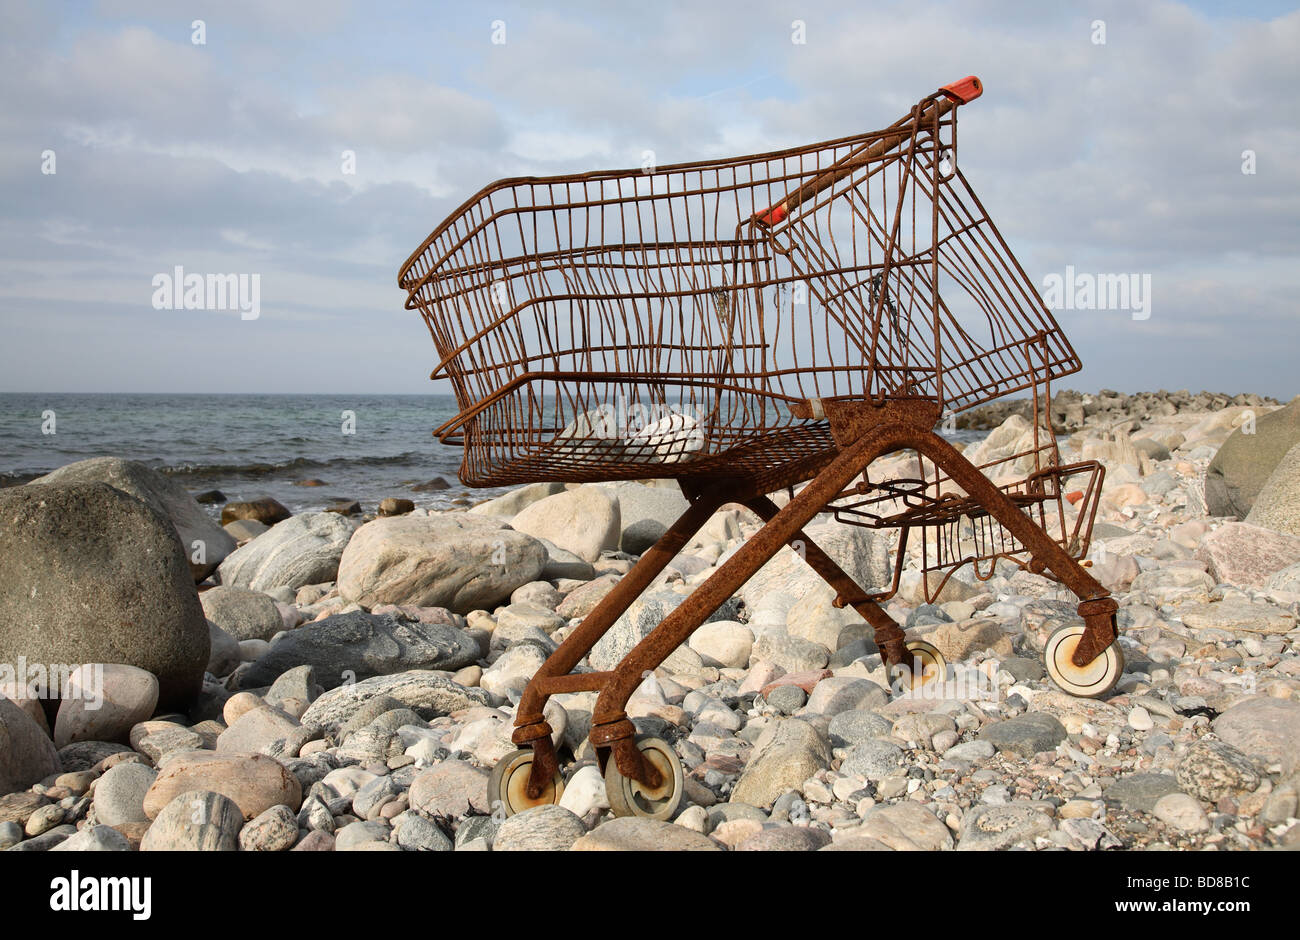 The last shopping - rusty shopping cart on a desolate and rocky beach. - Stock Image